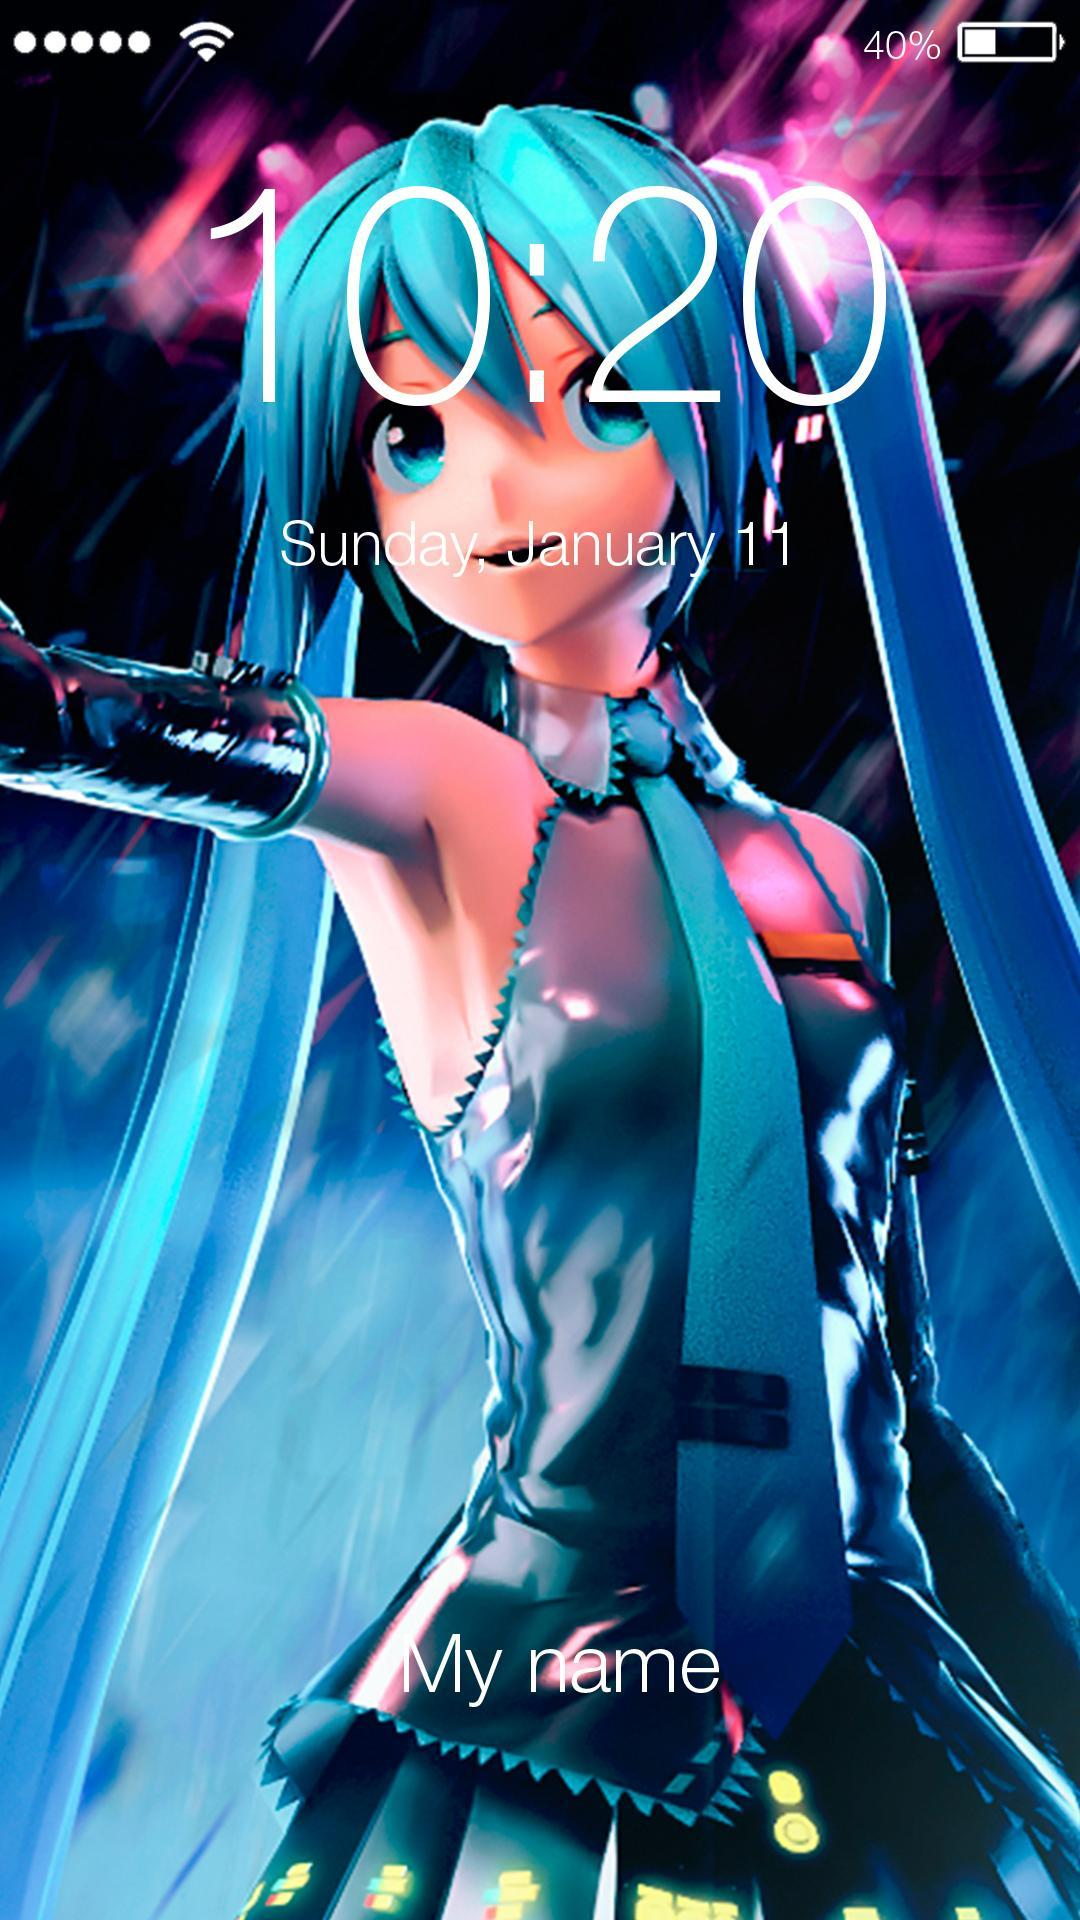 7f289bfe4f Hatsune Miku Anime Singer Pin Lock Password pour Android ...